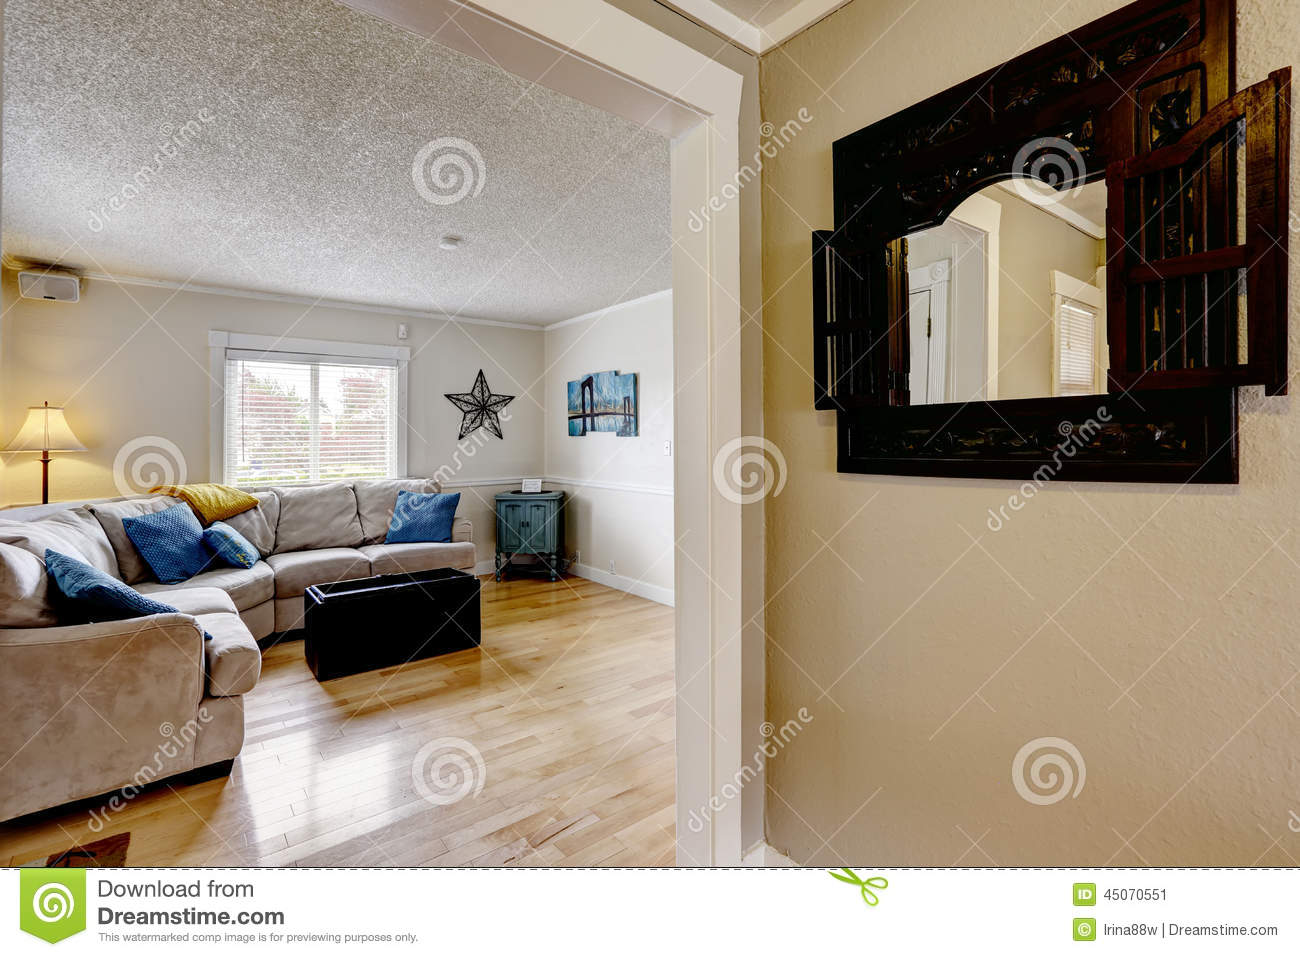 living room with beige sofa and blue pillows stock photo - image